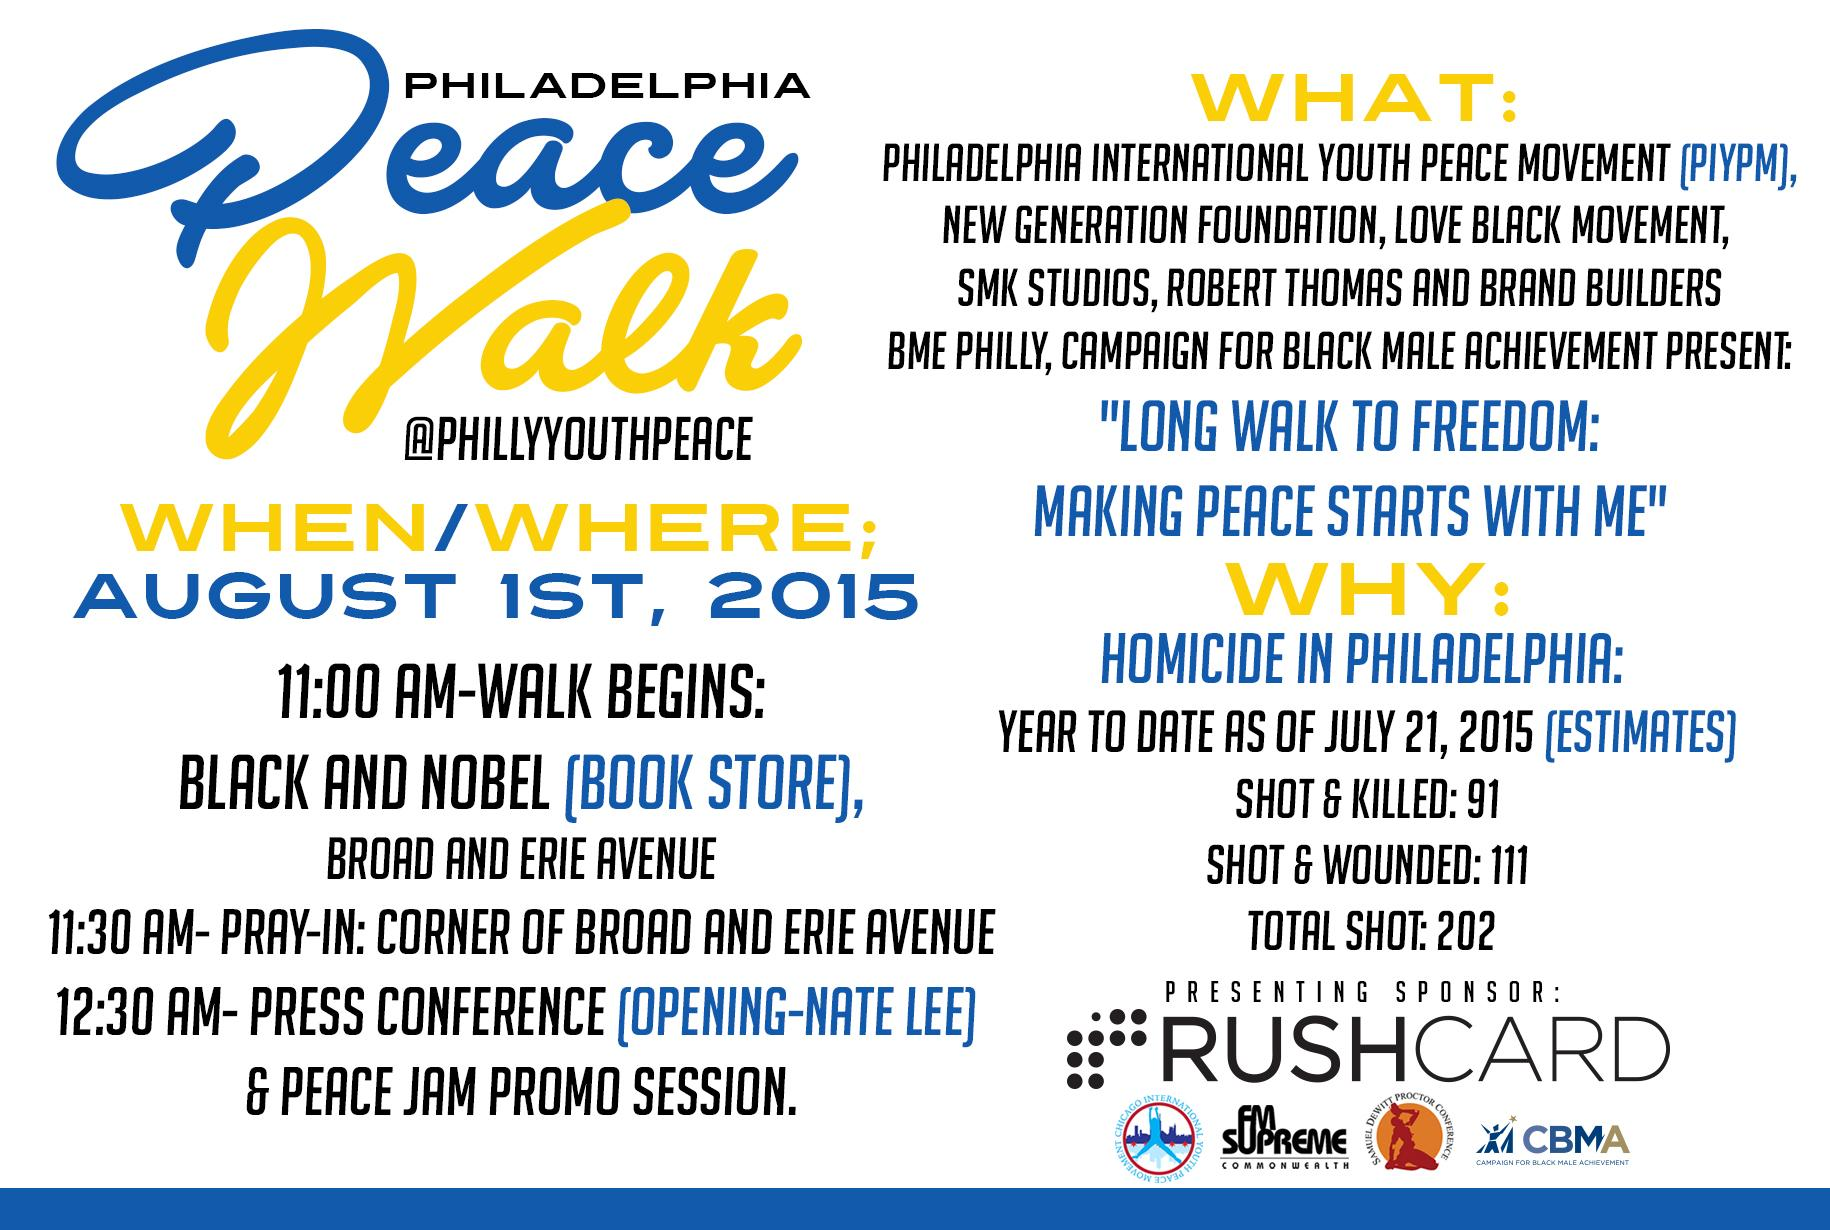 If ur in Philly, please join our peace march today at 11AM — starting from Black and Nobel. #KeepThePeace RT! http://t.co/hRYZ9n5rzS